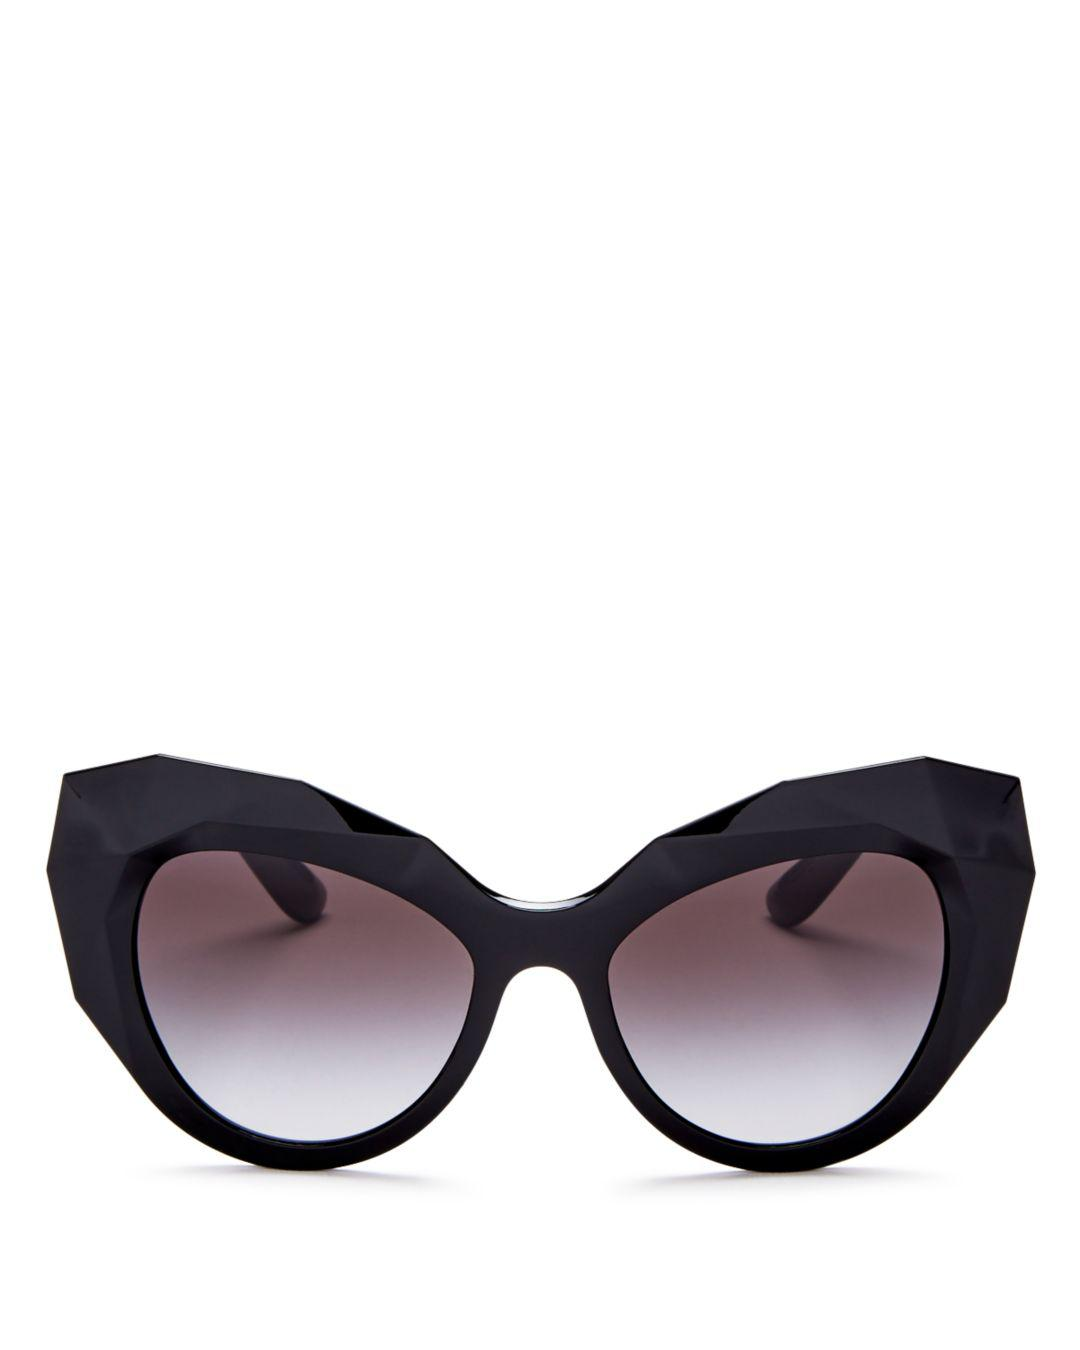 aee0b57a4a12b Dolce   Gabbana. Black Dolce   Gabbana Women s Cat Eye Sunglasses ...